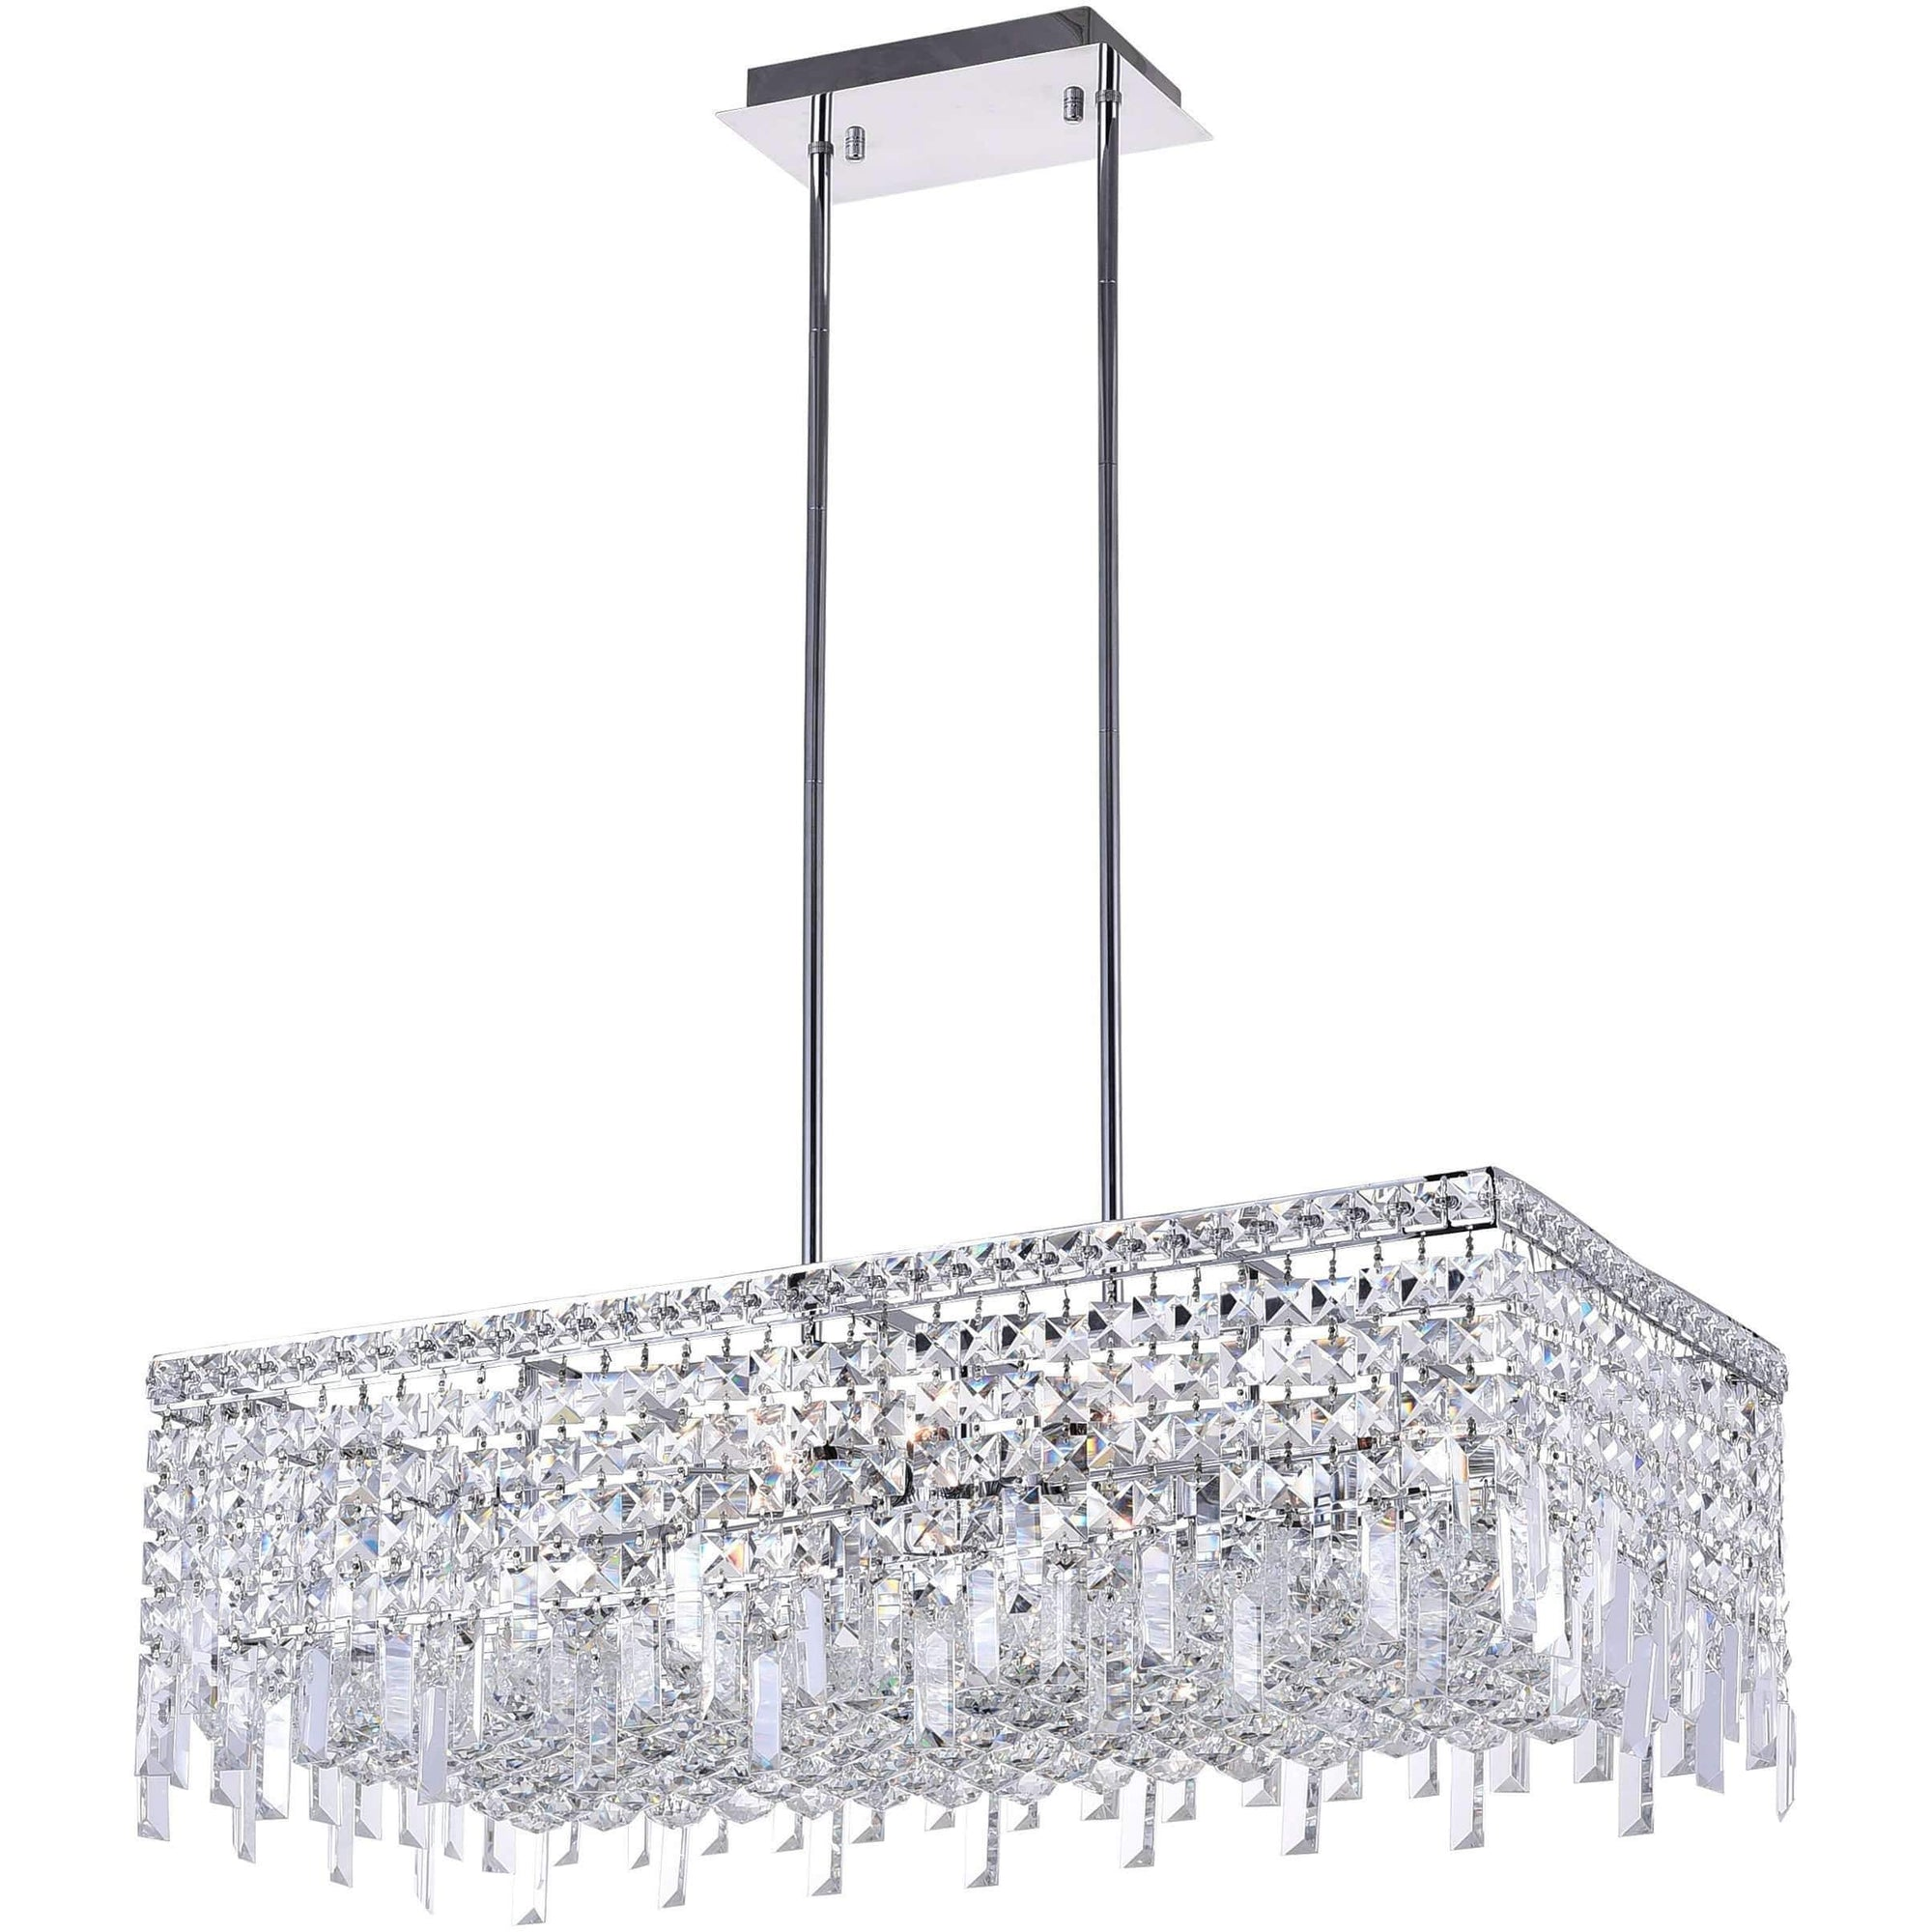 CWI Lighting Chandeliers Chrome / K9 Clear Colosseum 10 Light Down Chandelier with Chrome finish by CWI Lighting 8031P30C-RC